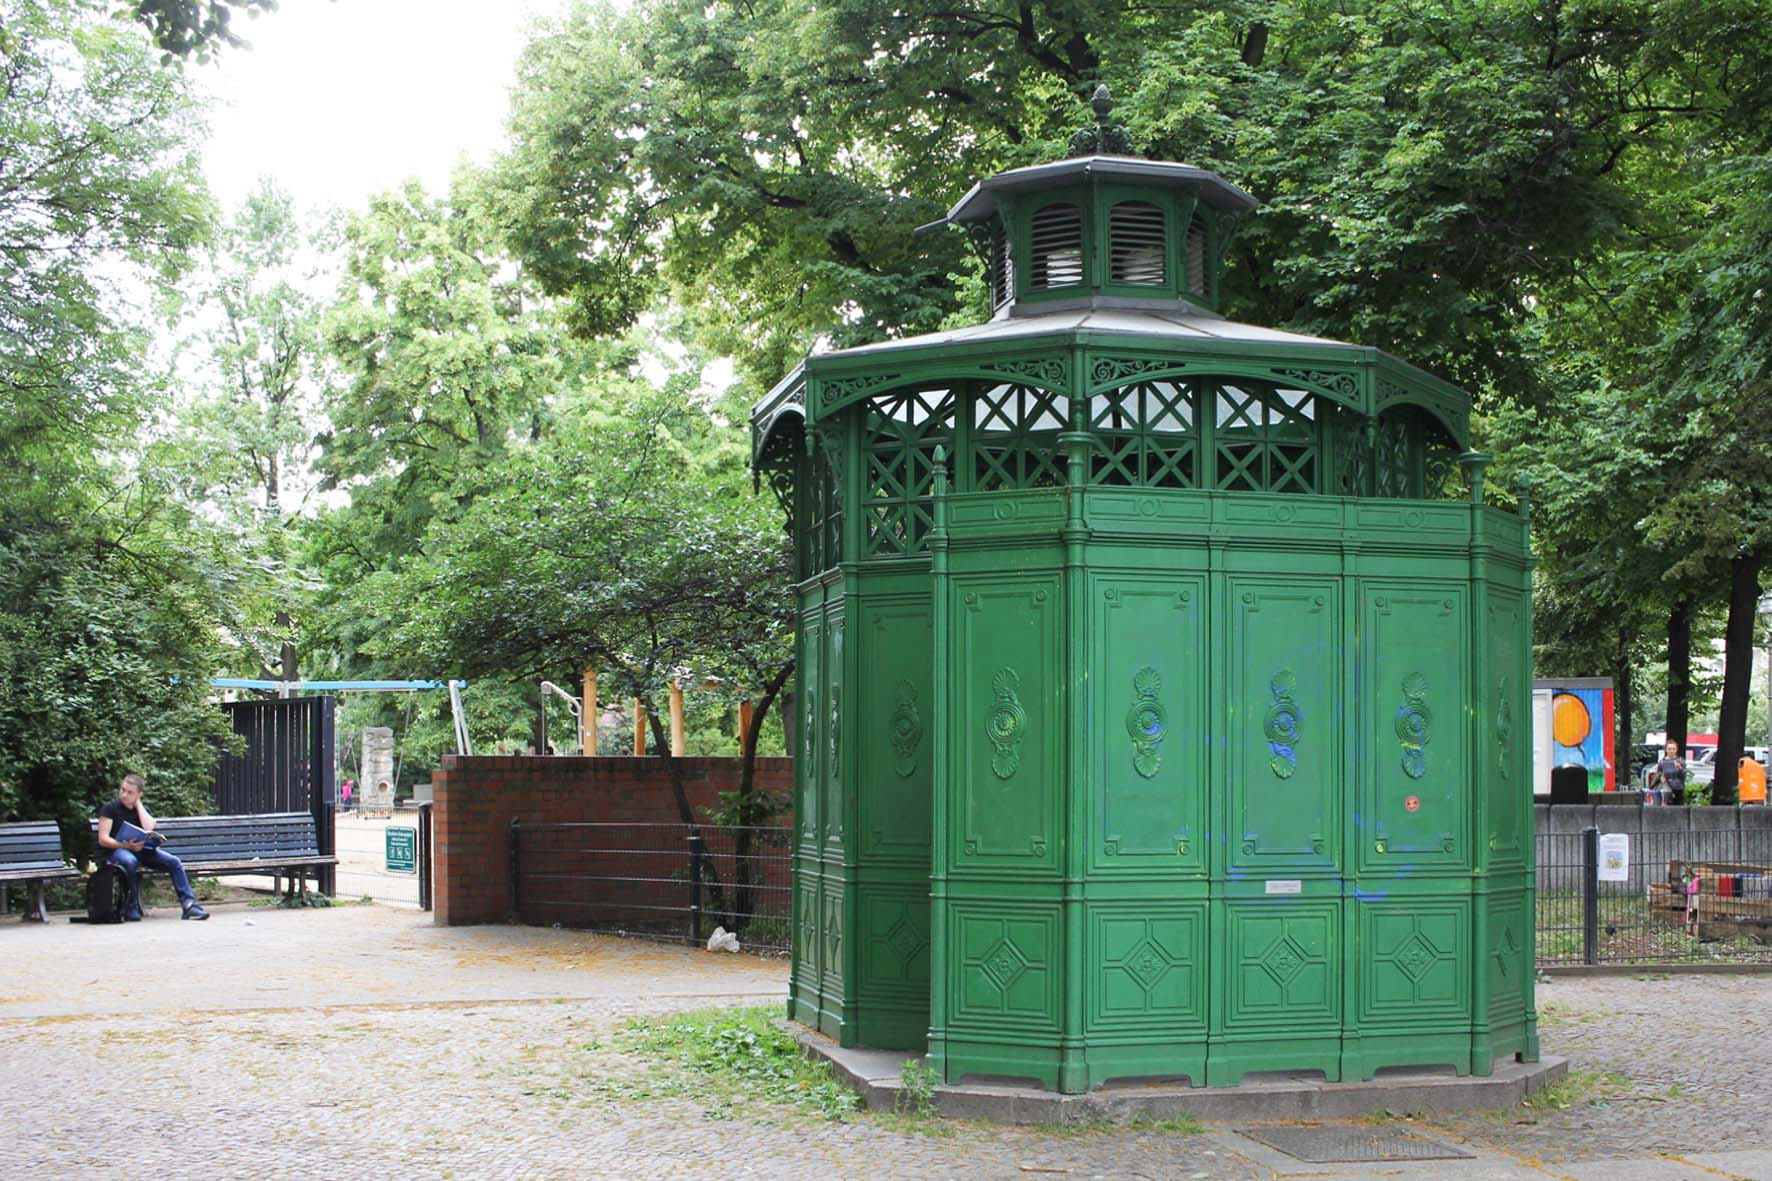 Café Achteck - Stephanplatz - an example of Berlin's classic 19th century green cast iron public toilets